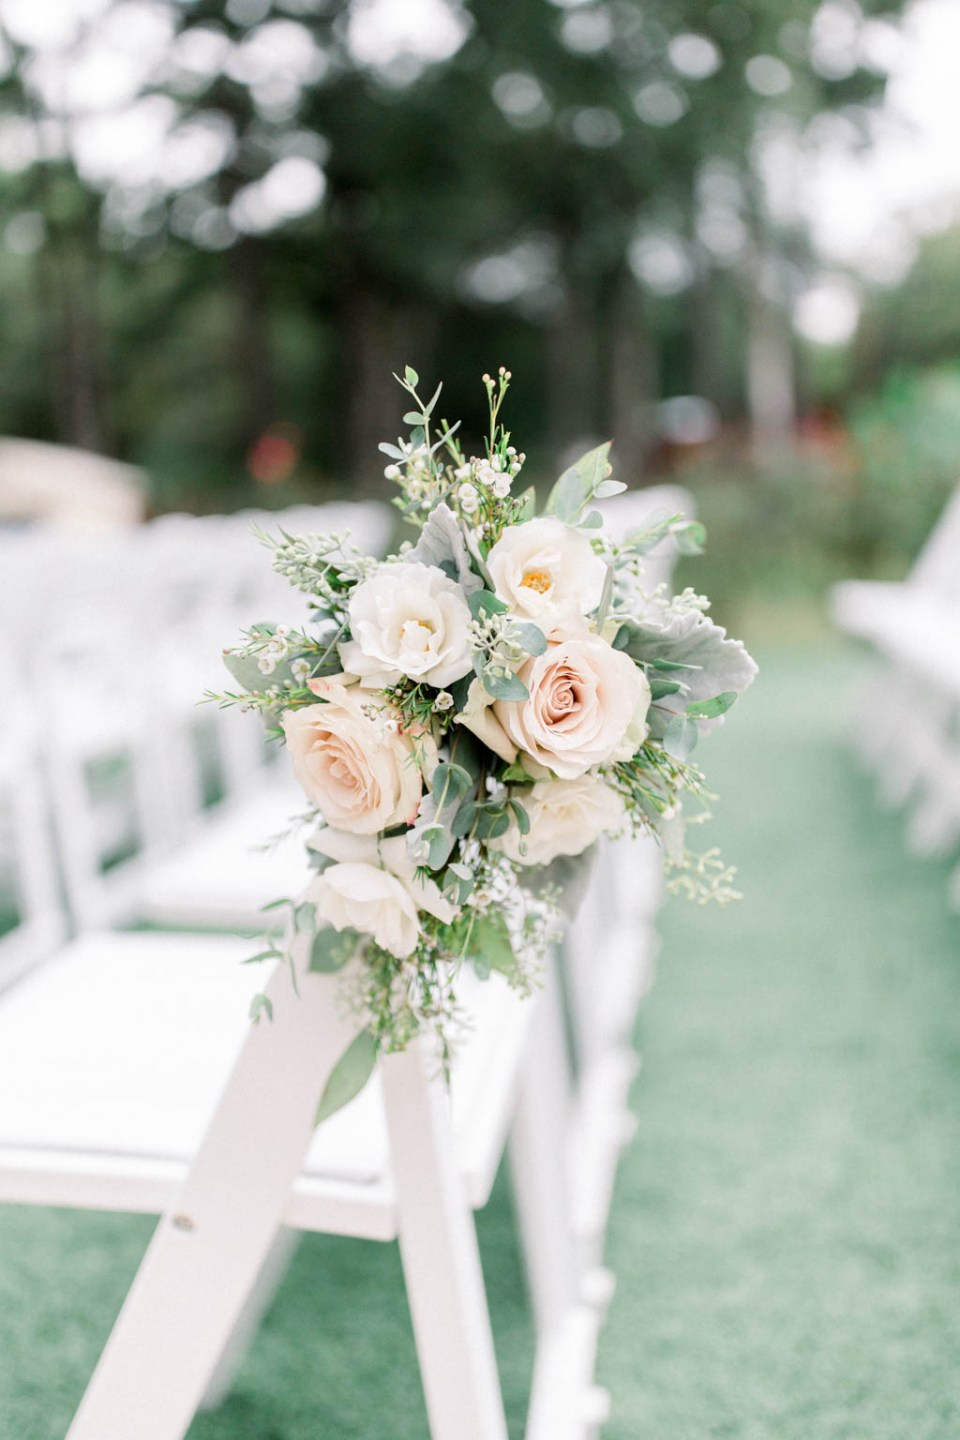 Wedding aisle flowers by Dallas florist Wild Rose Events, photographed by Dallas wedding photographer Adria Lea Photography